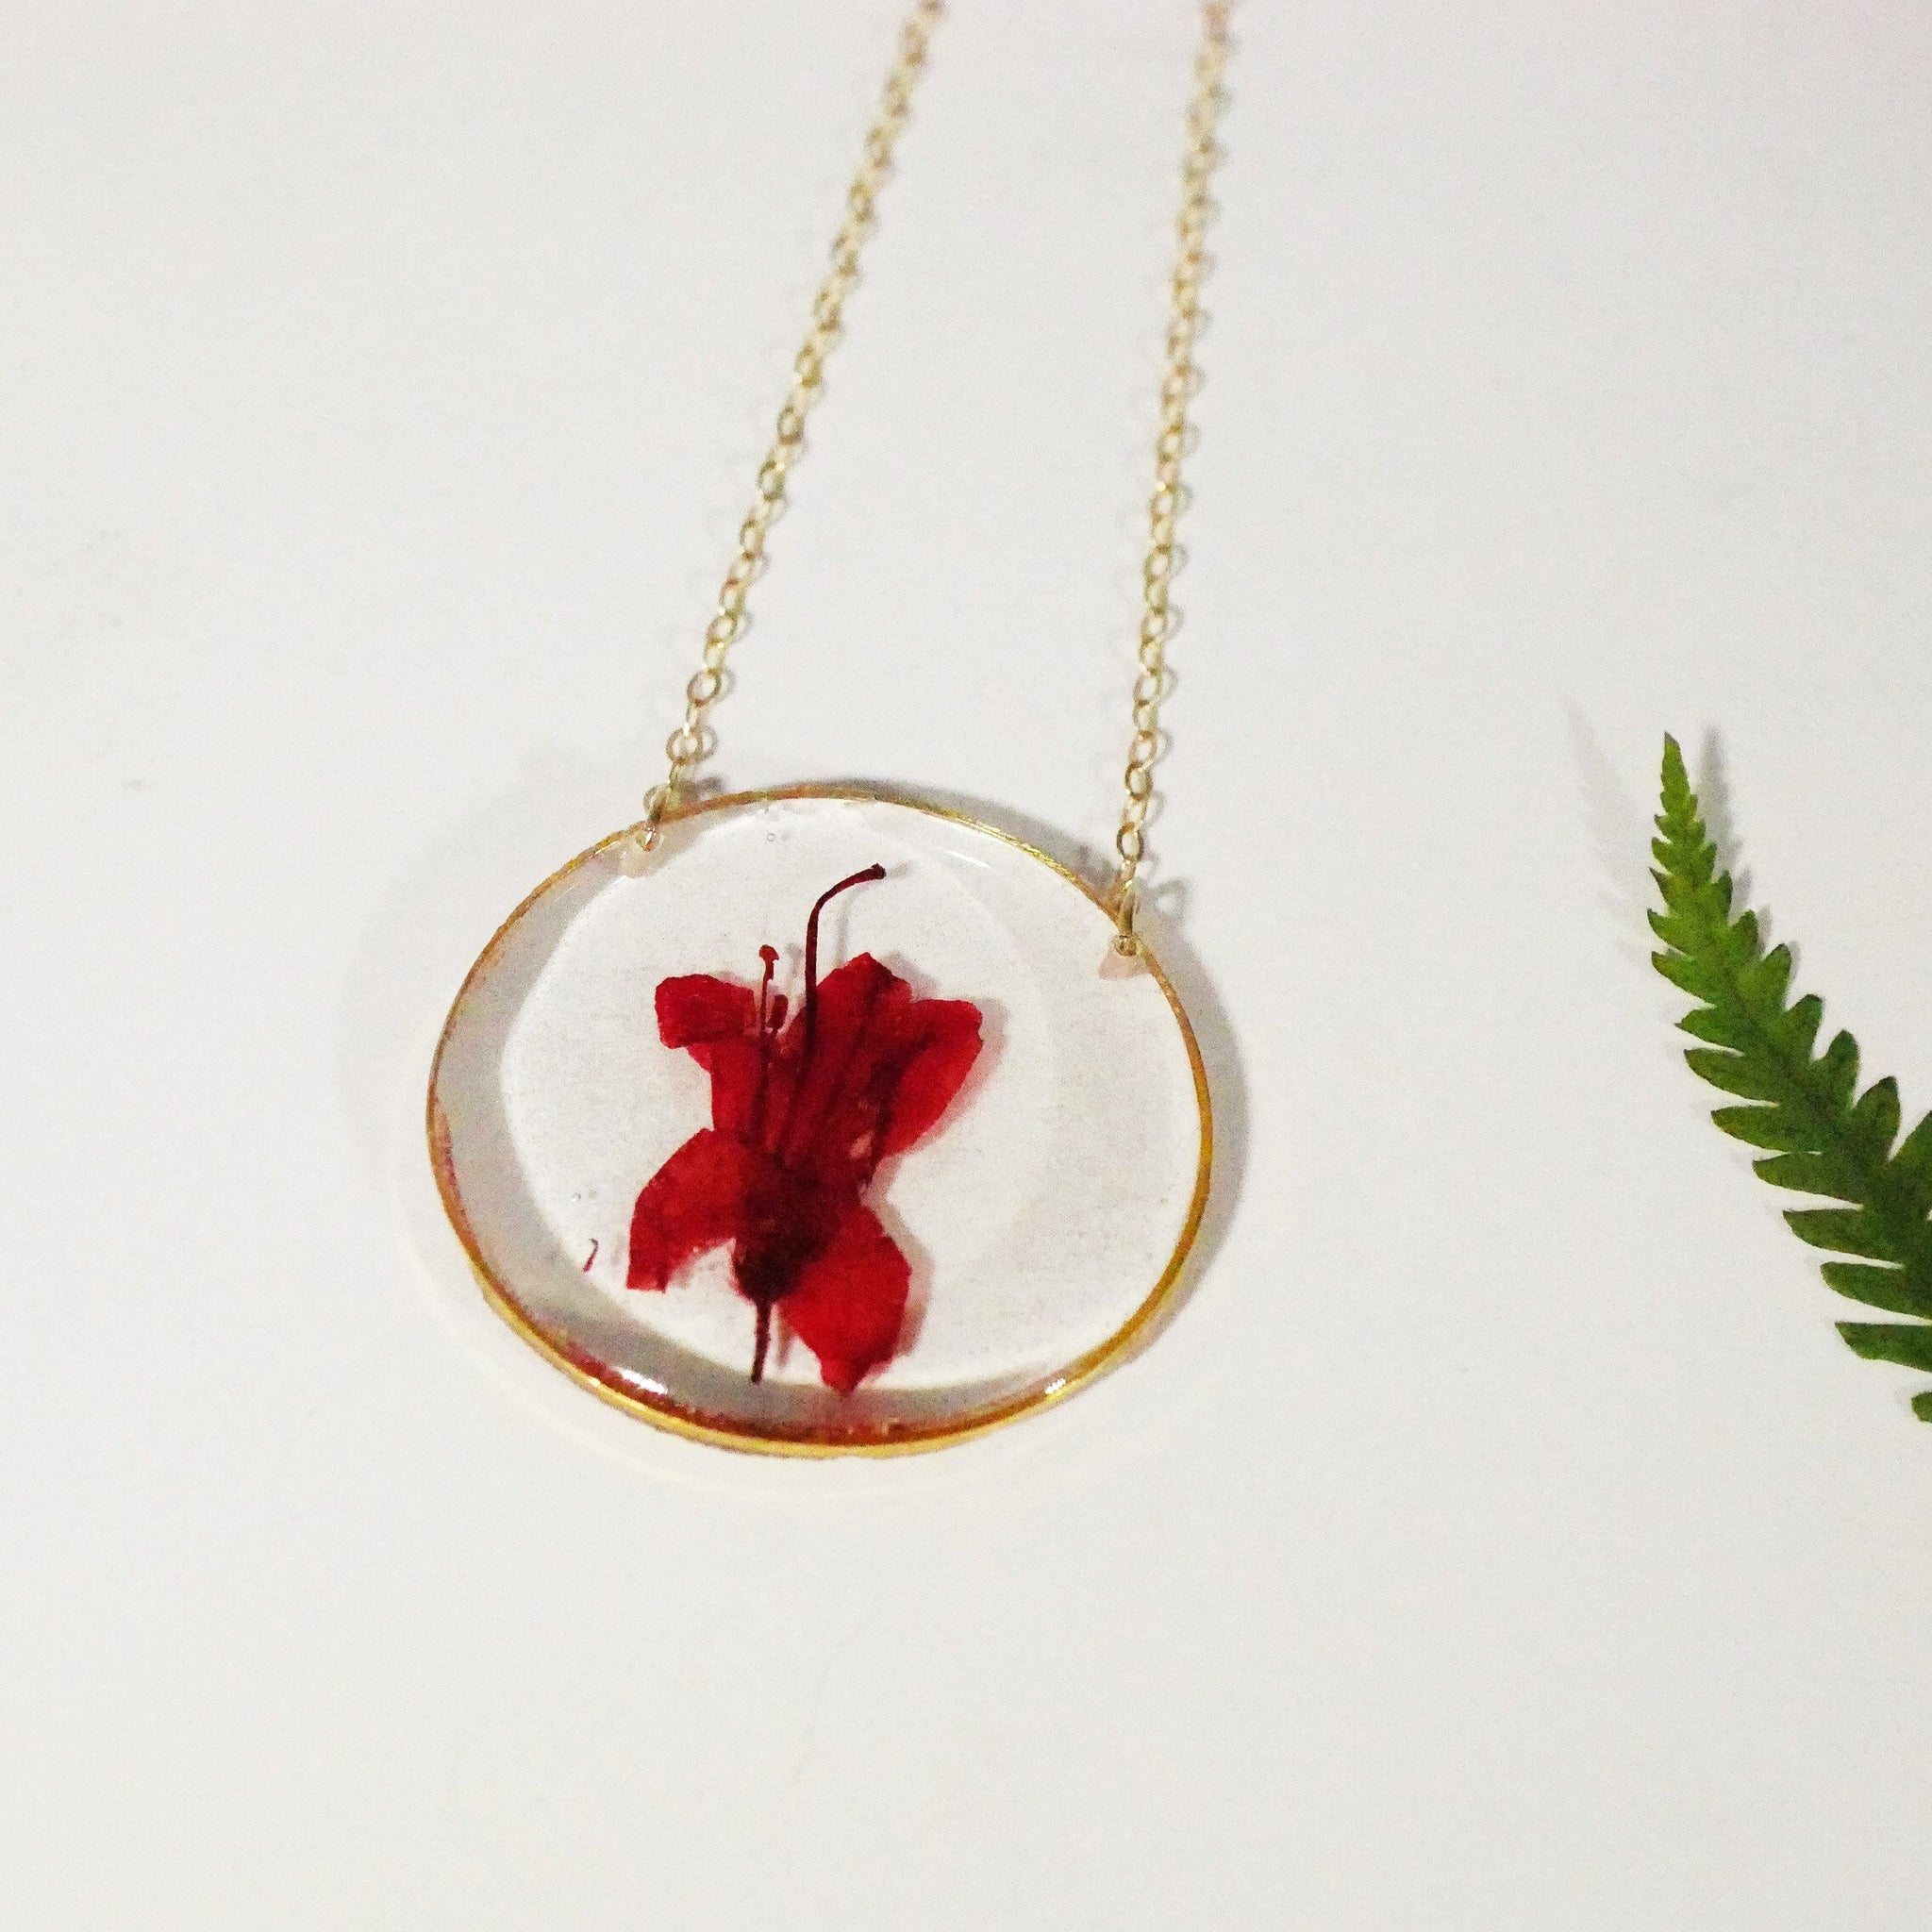 Pressed azalea necklace, Red azalea necklace, real flower necklace Flower terrarium preserved flowers pressed flower jewelry